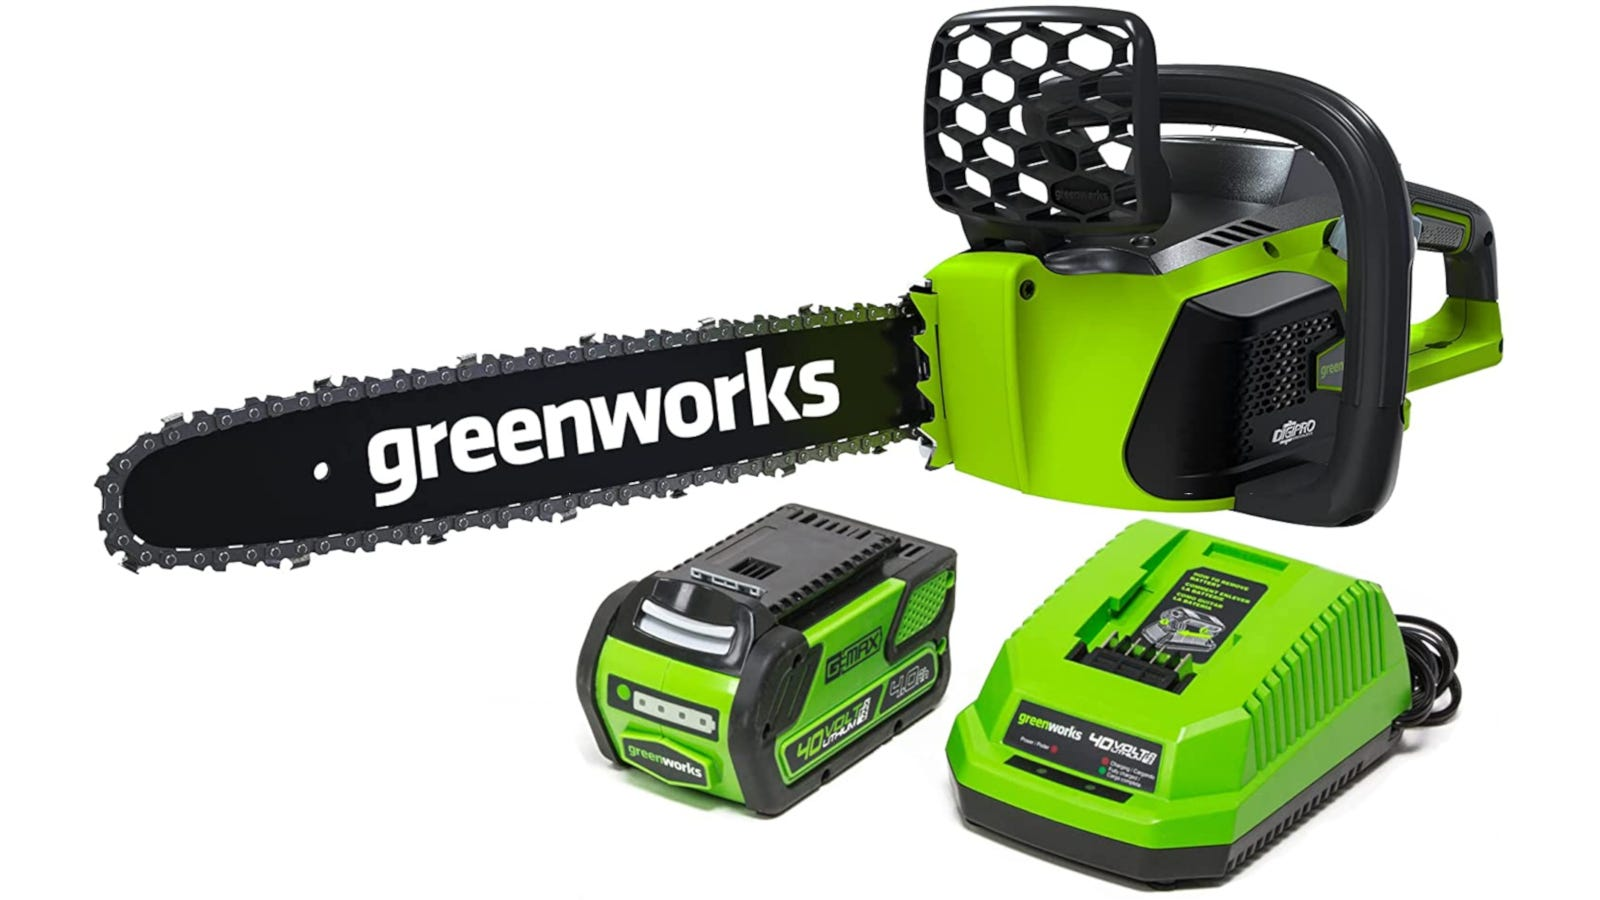 Green battery-powered chainsaw with 16-inch bar, 40V Li-Ion battery, charger, and chain brake